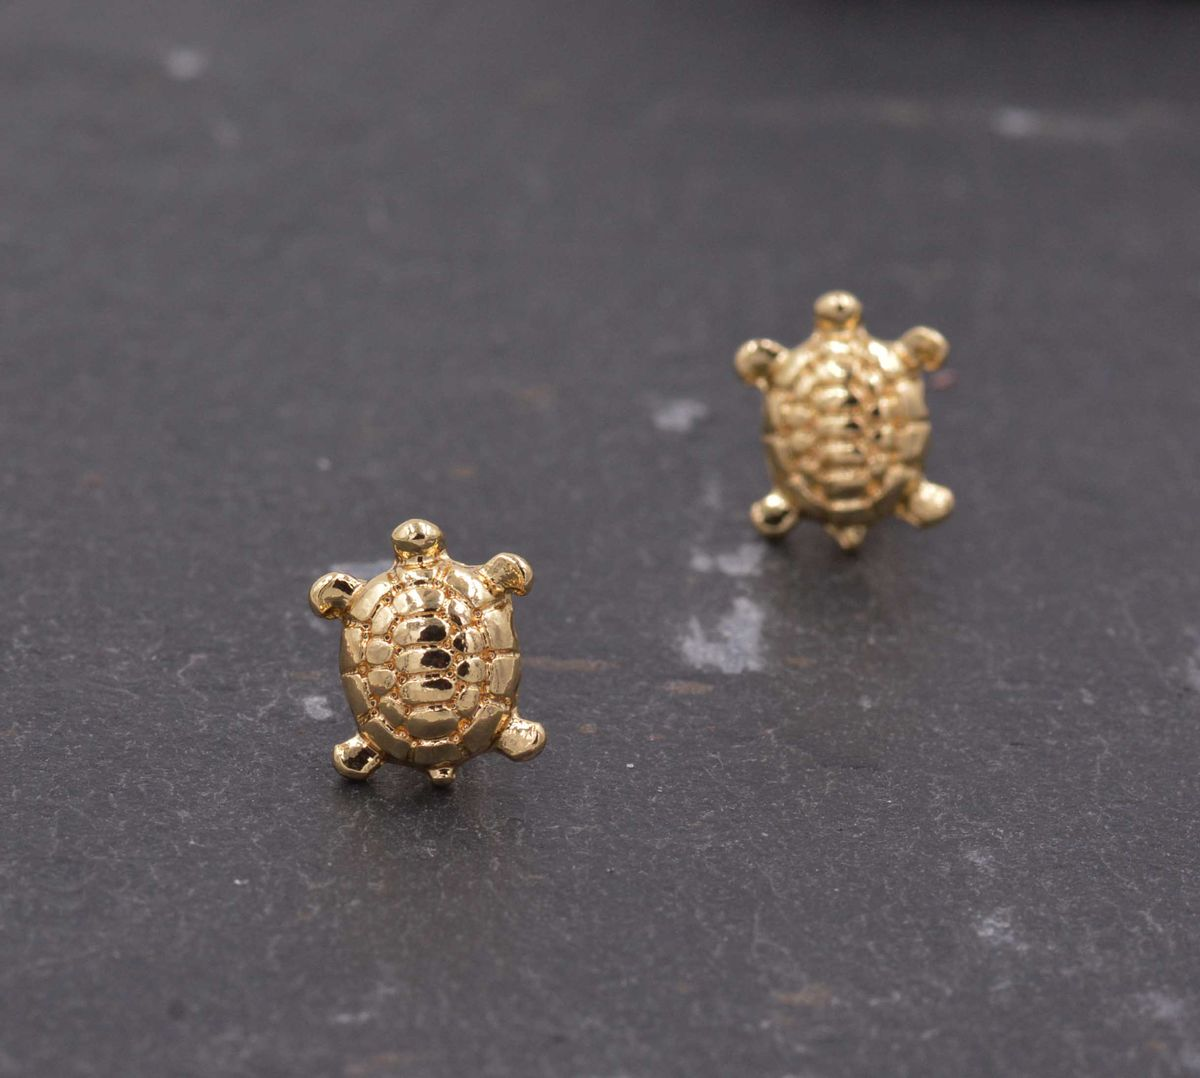 Gold Plated Little Turtle Tortoise Stud Earrings - Cute,  Fun and Quirky Jewellery - In Organza Bag.  - product images  of